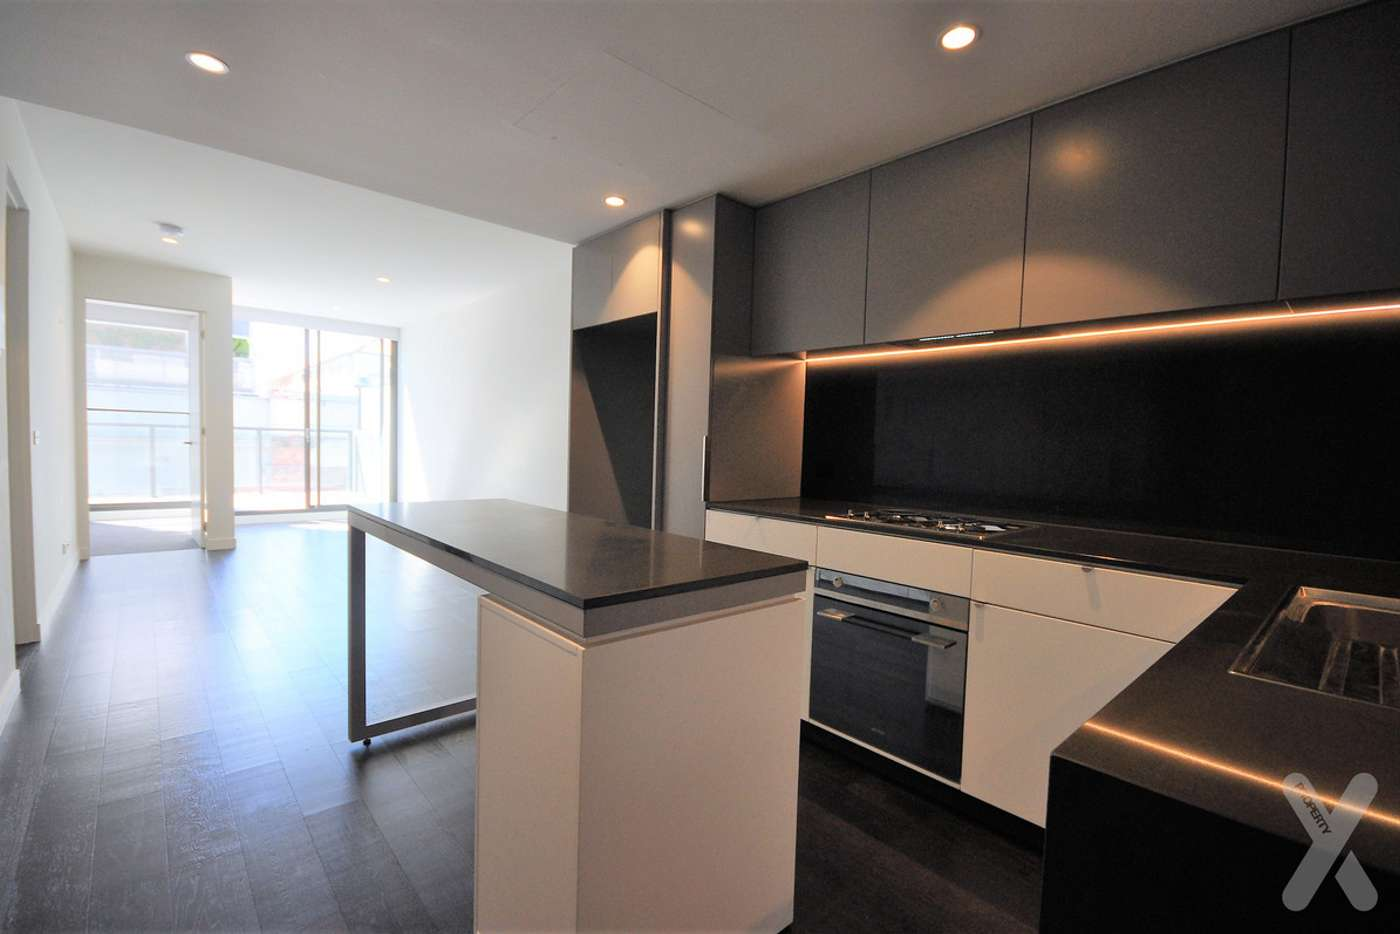 Main view of Homely apartment listing, 142/158 Smith Street, Collingwood VIC 3066